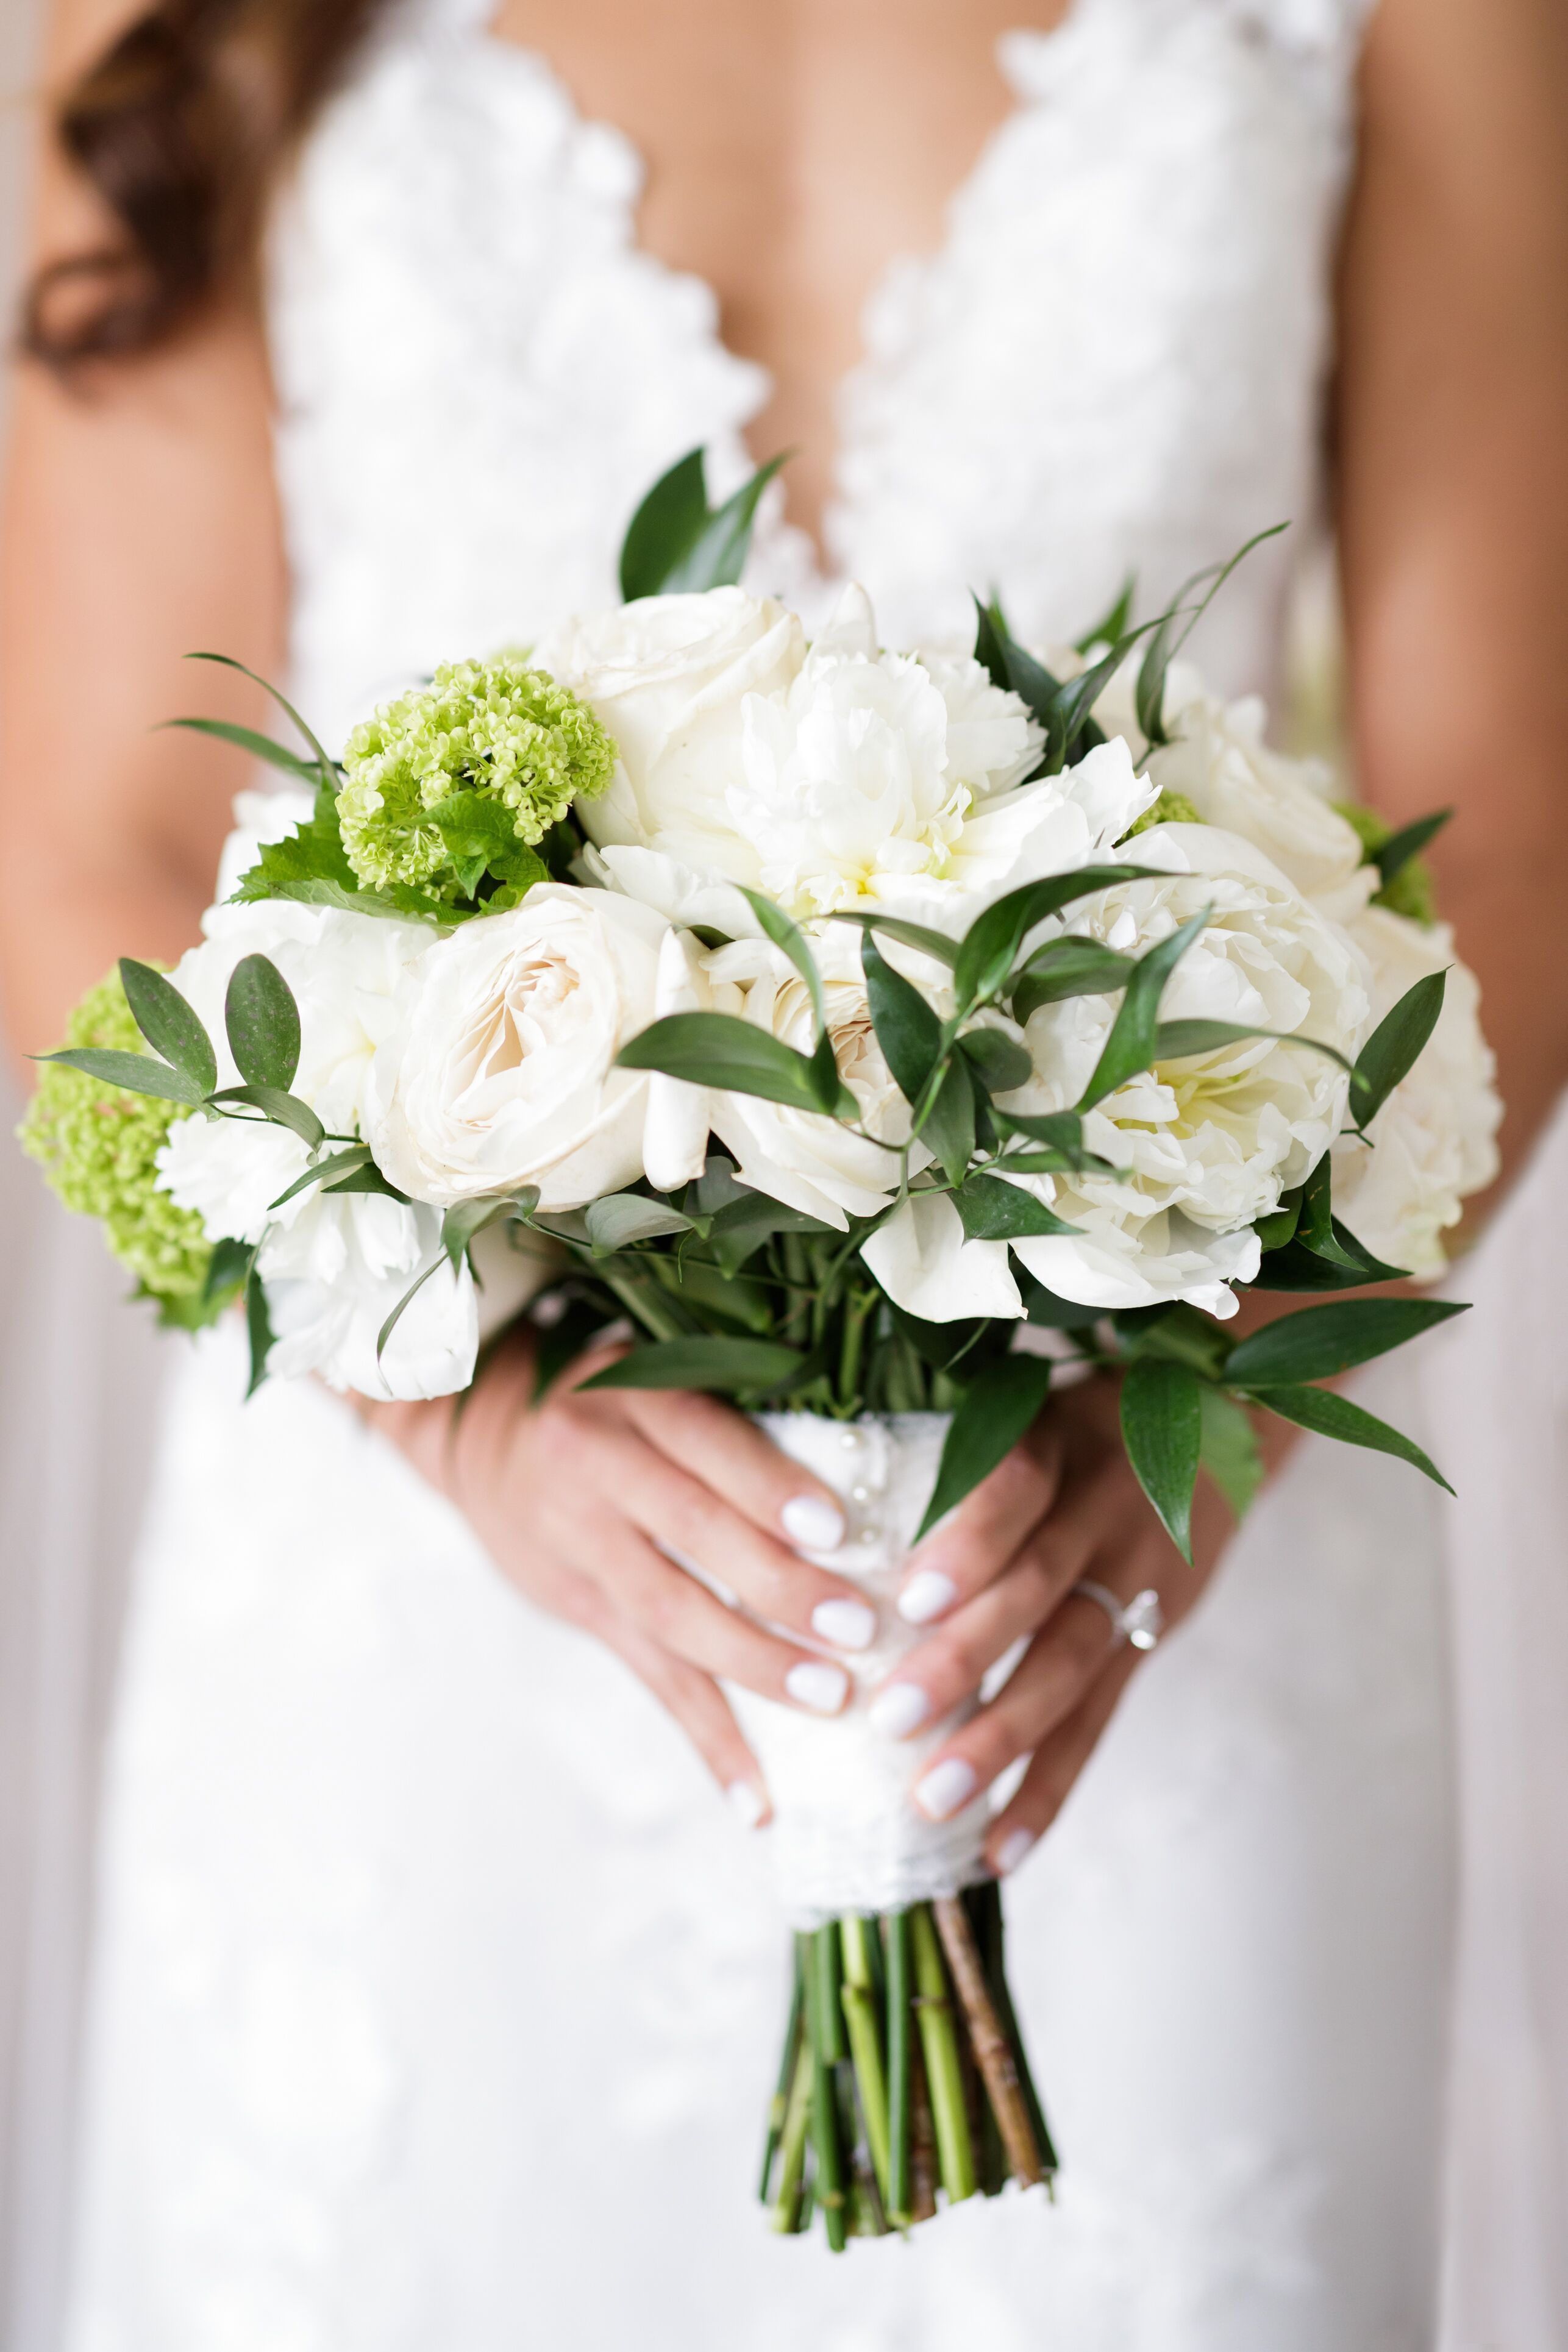 Tight Compact White And Green Bridal Bouquet For Chicago Garden